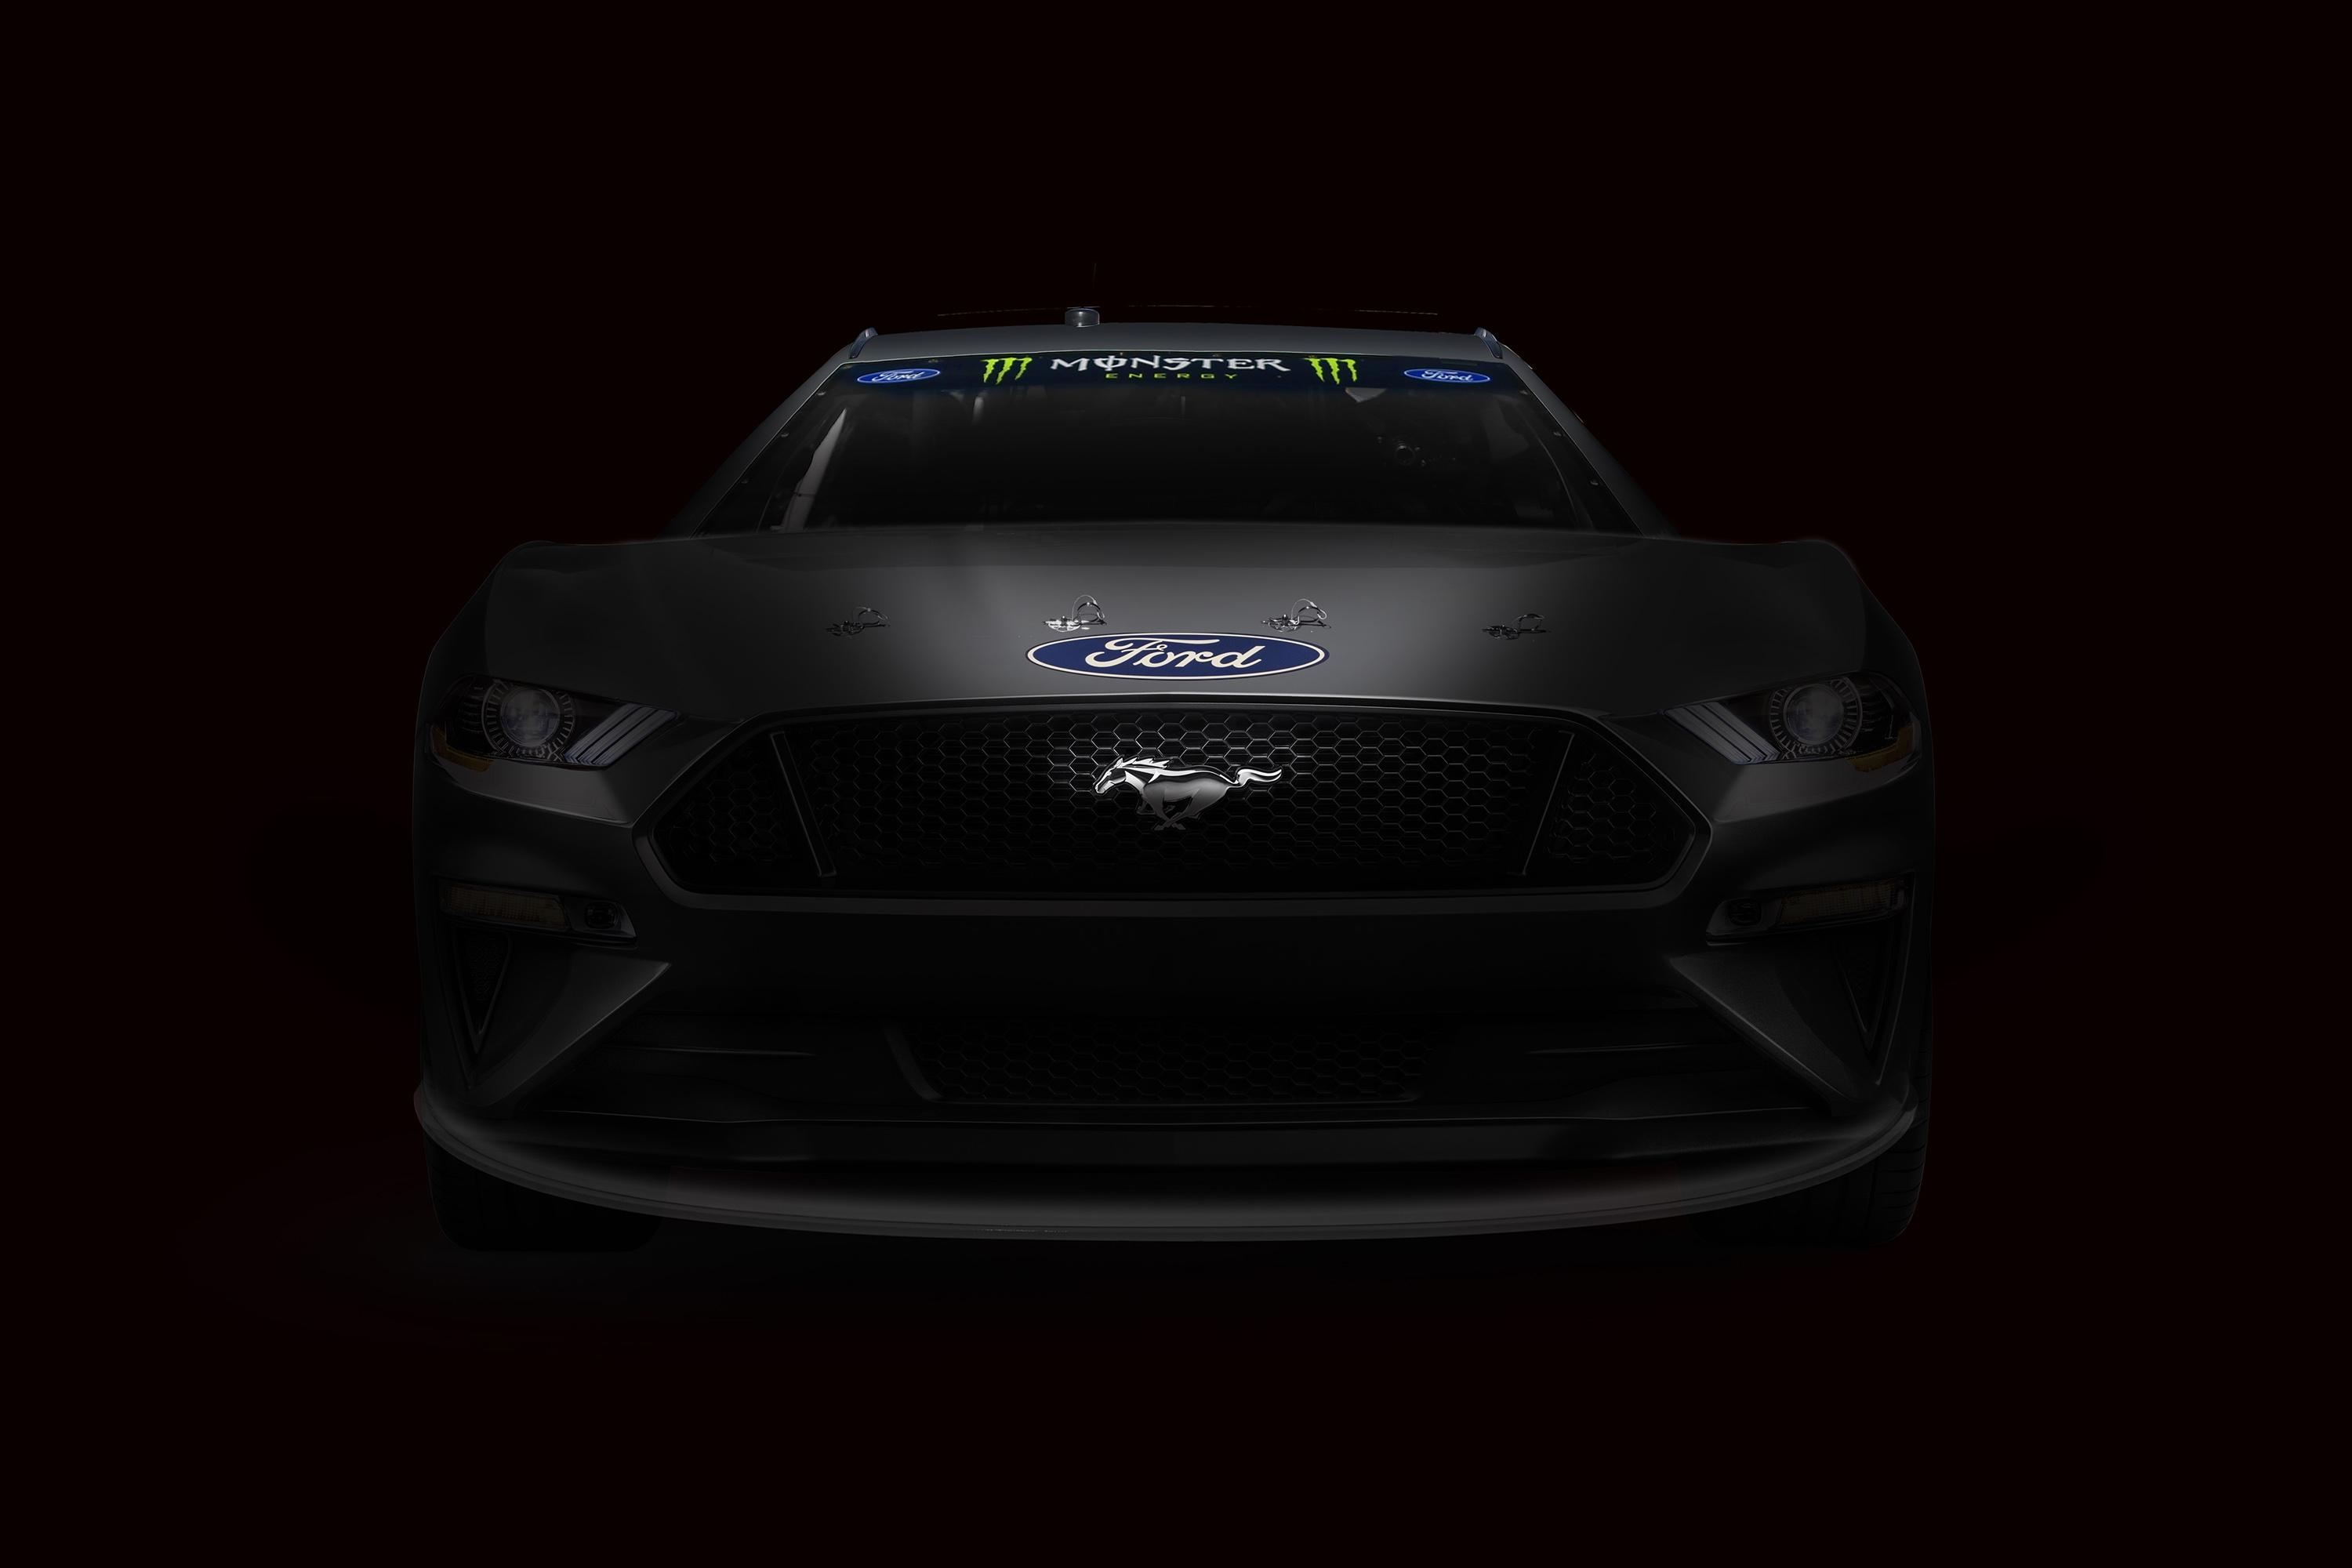 Ford Mustang Will Enter the 2019 NASCAR Cup